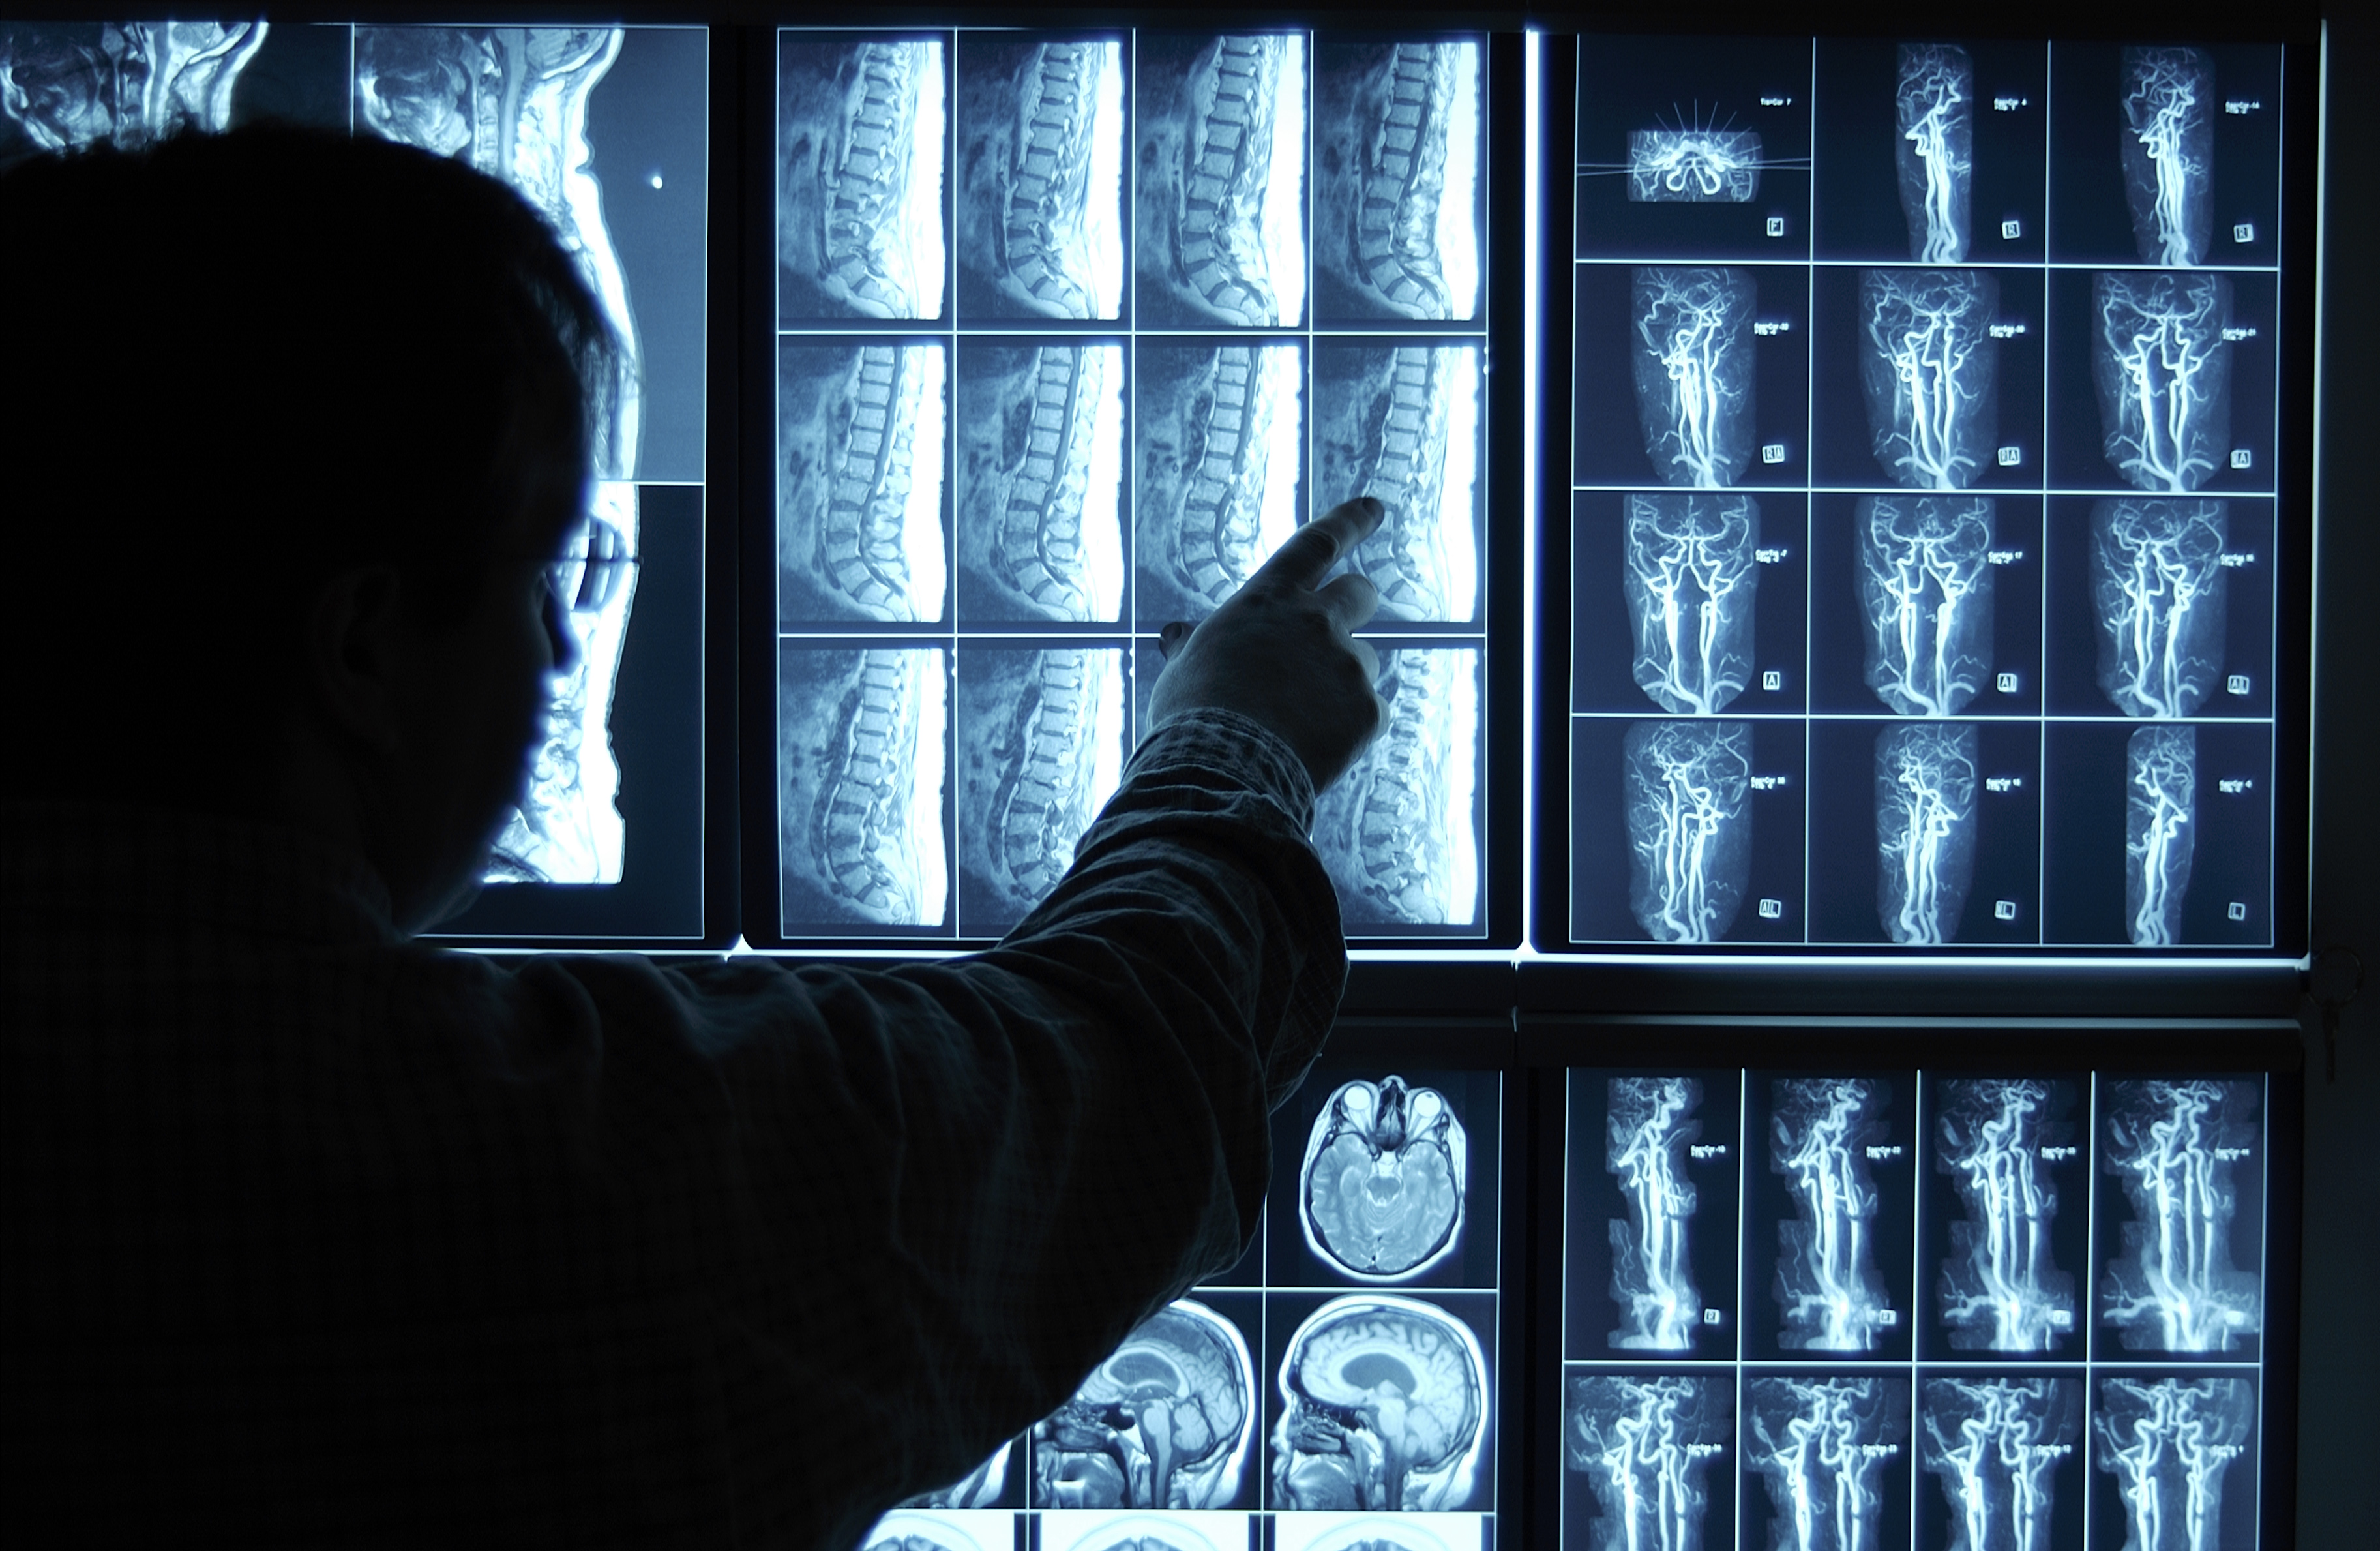 Professions in Diagnostic Radiology